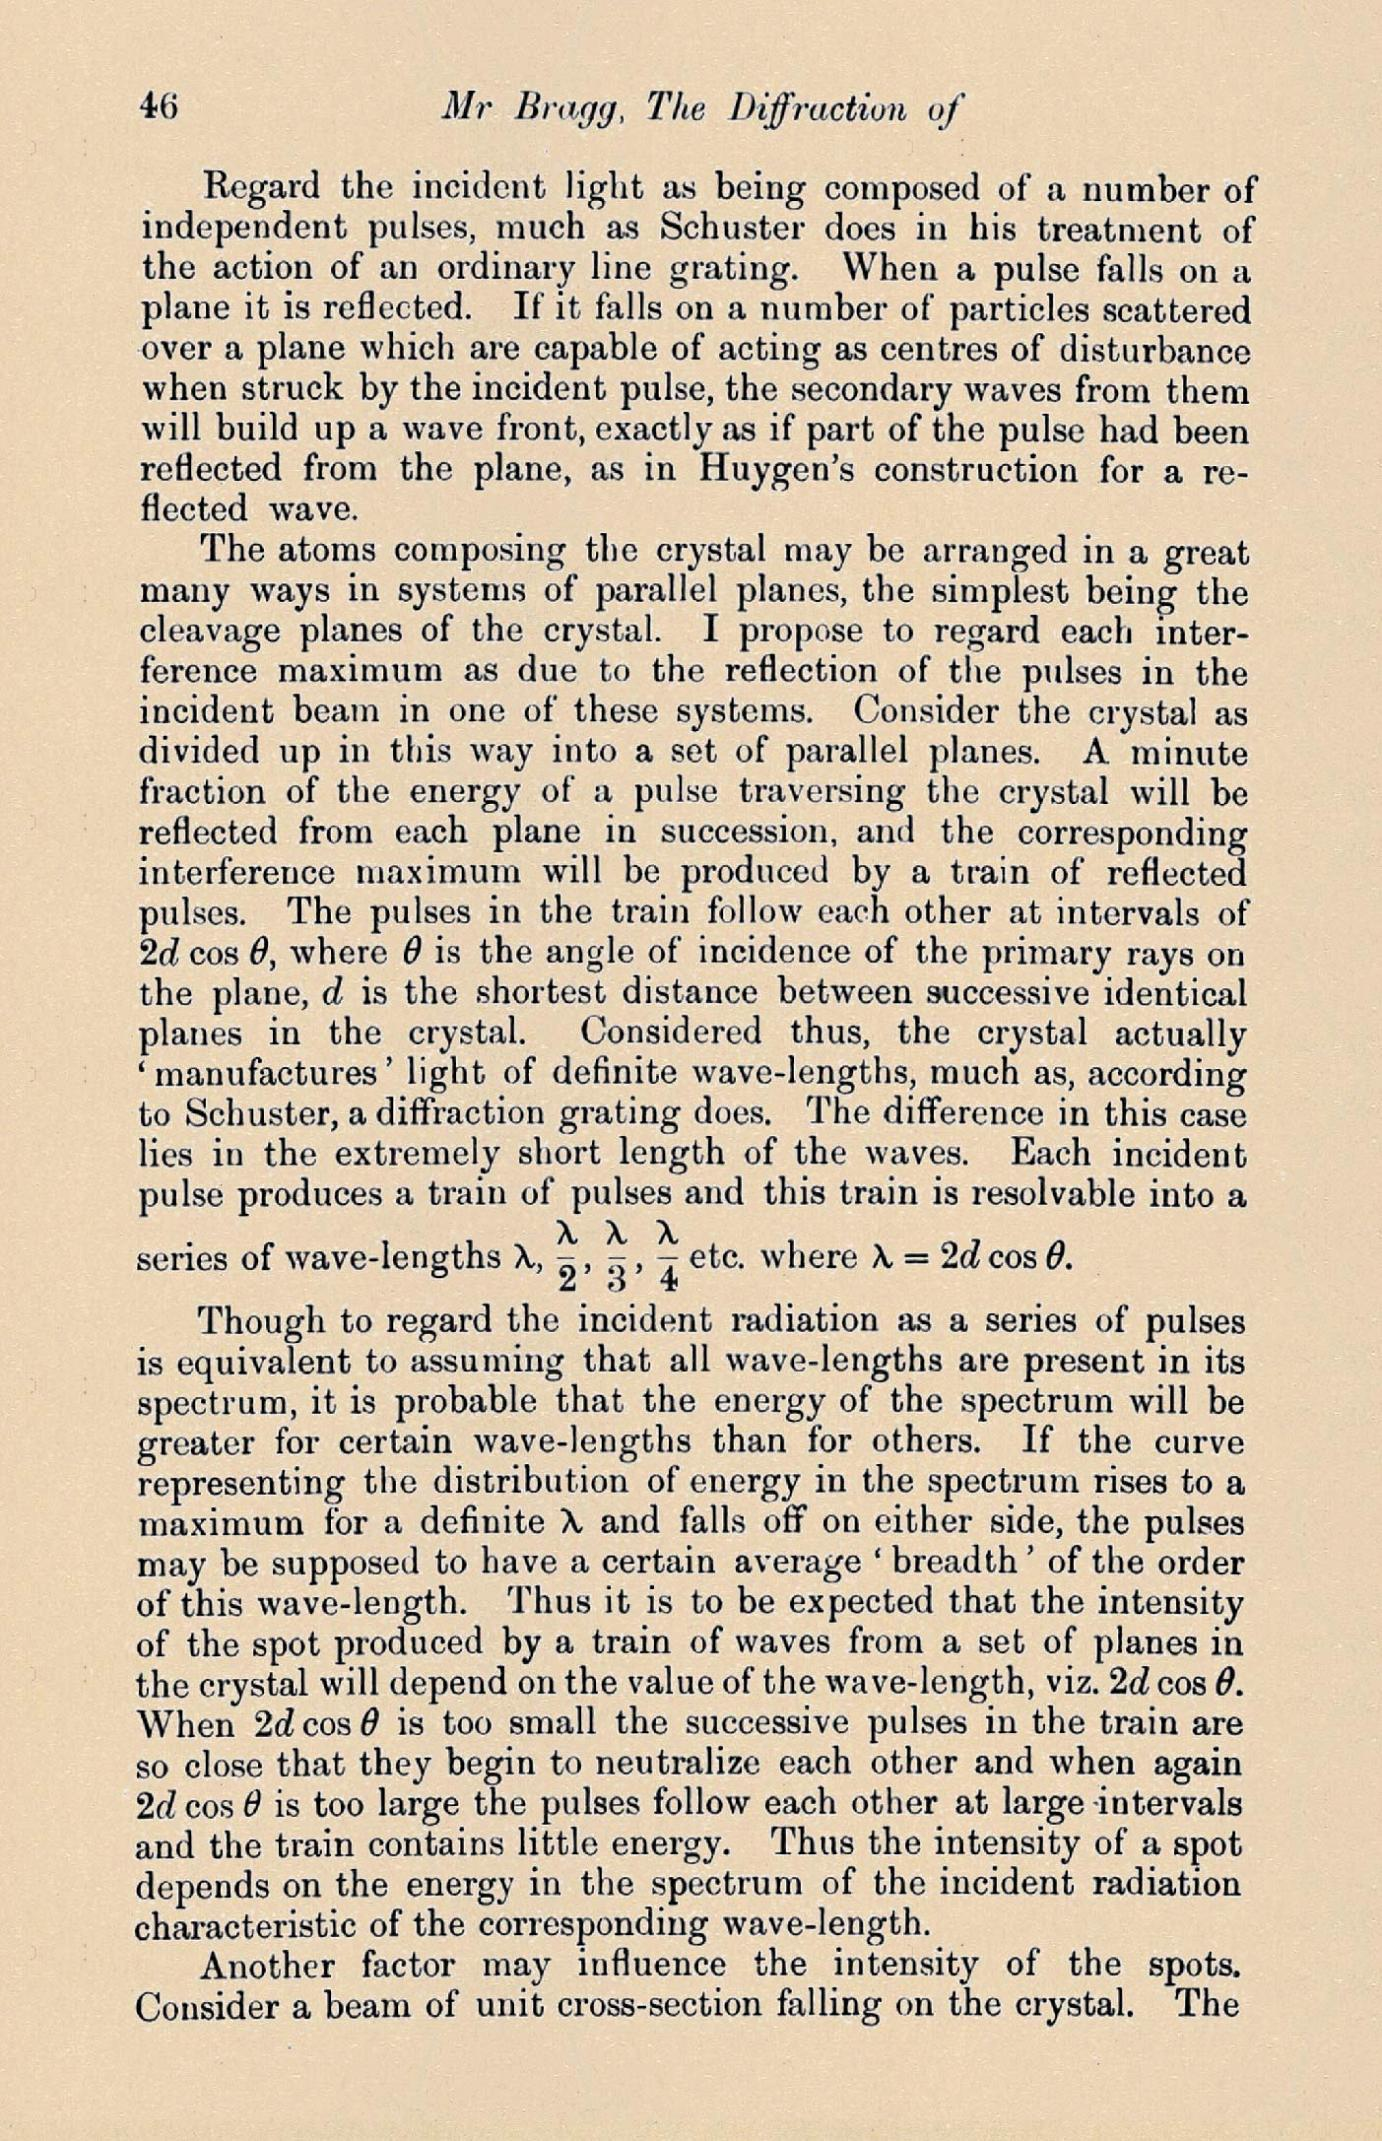 Page 46 from WILLIAM L. GG (1890 - 1971). The Diffraction of ...